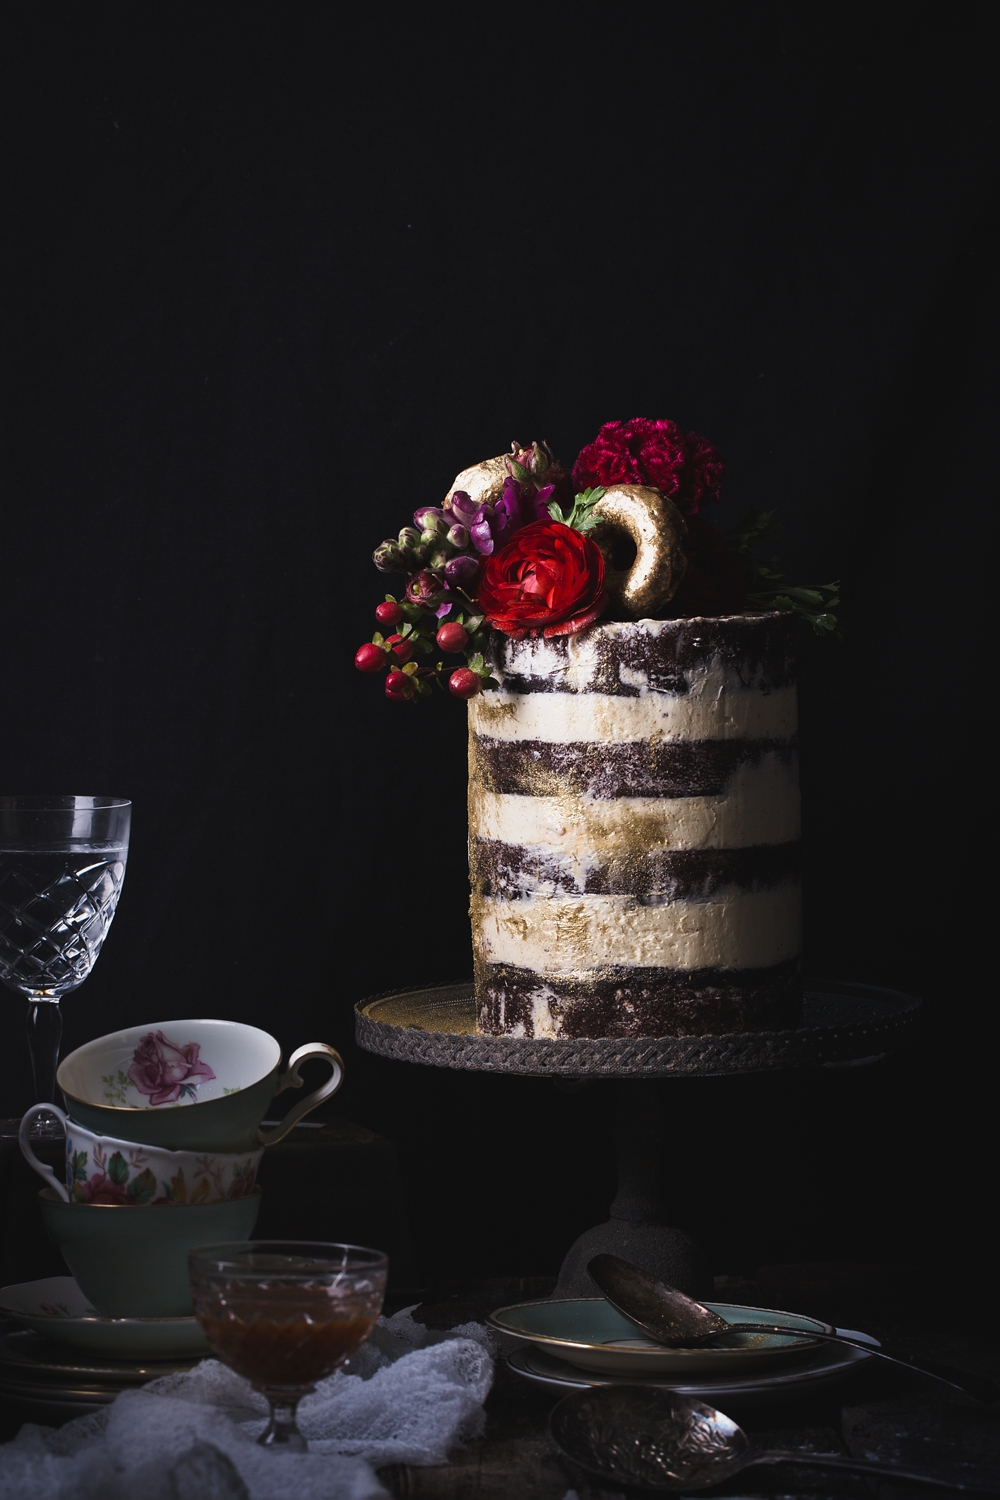 wedding-cake-brisbane-food-photography_0113.jpg